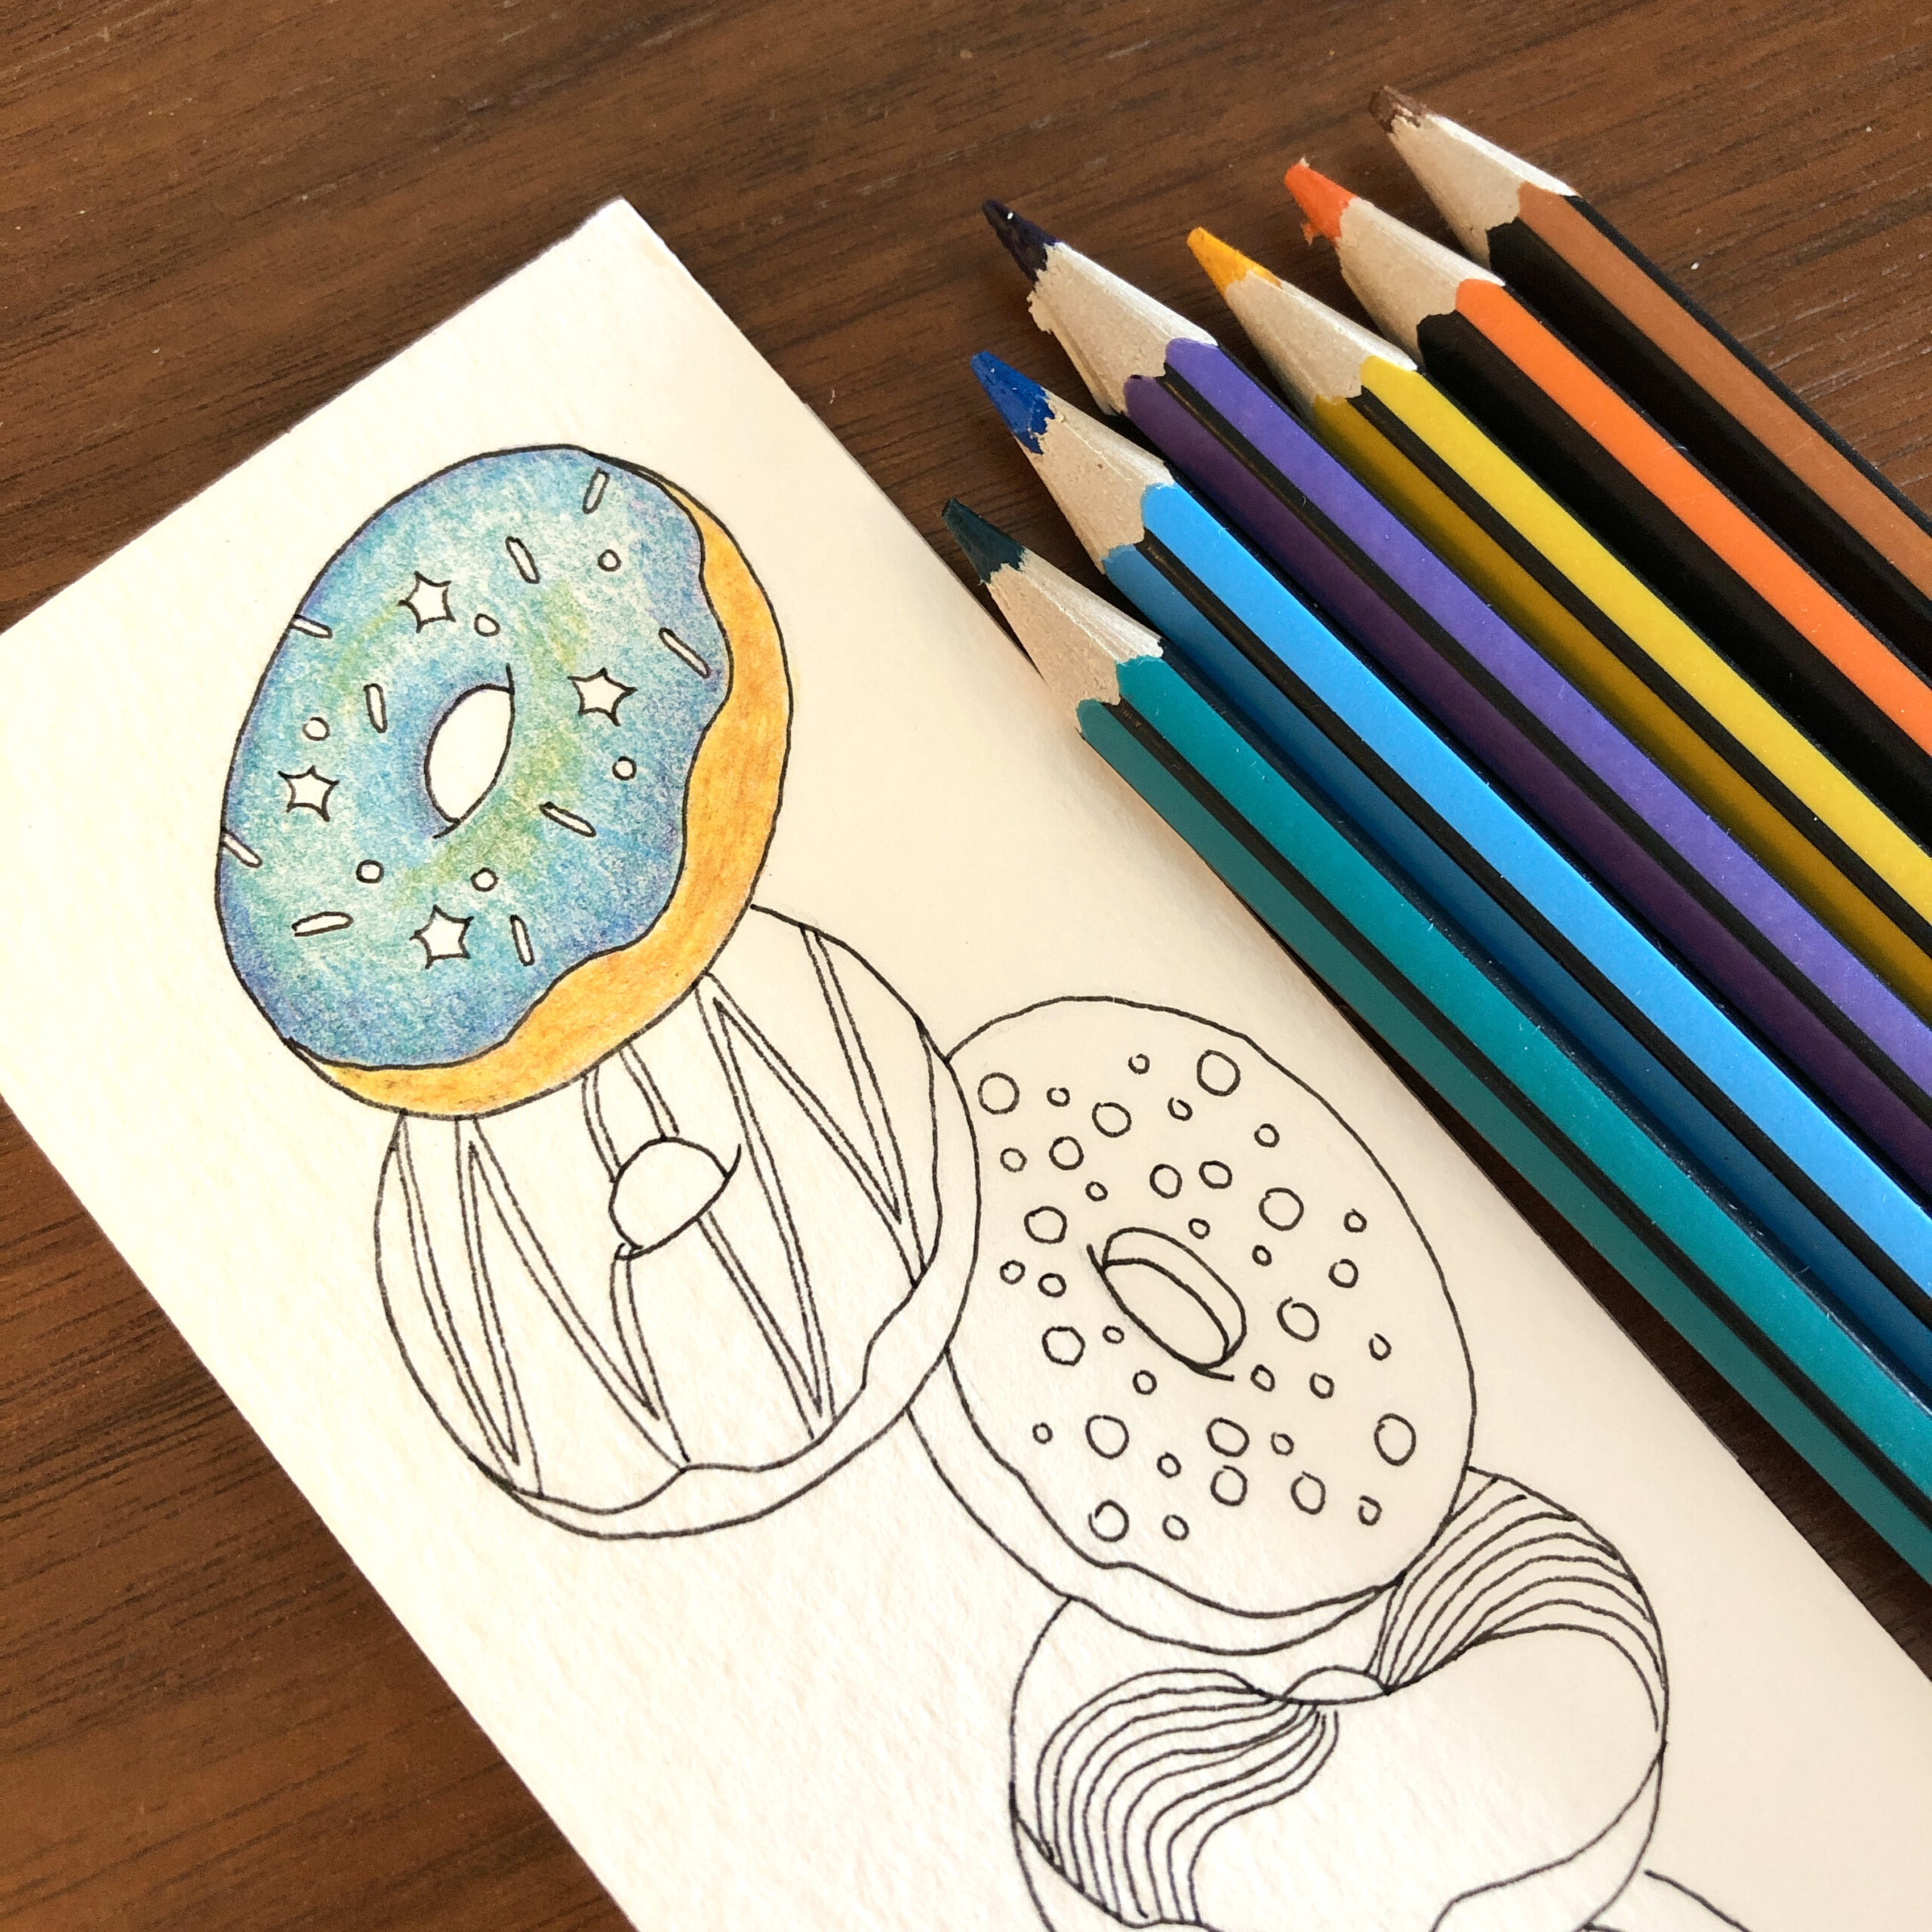 work in progress shot of a handcrafted bookmark featuring five falling doughnuts with coloured icing and sprinkles